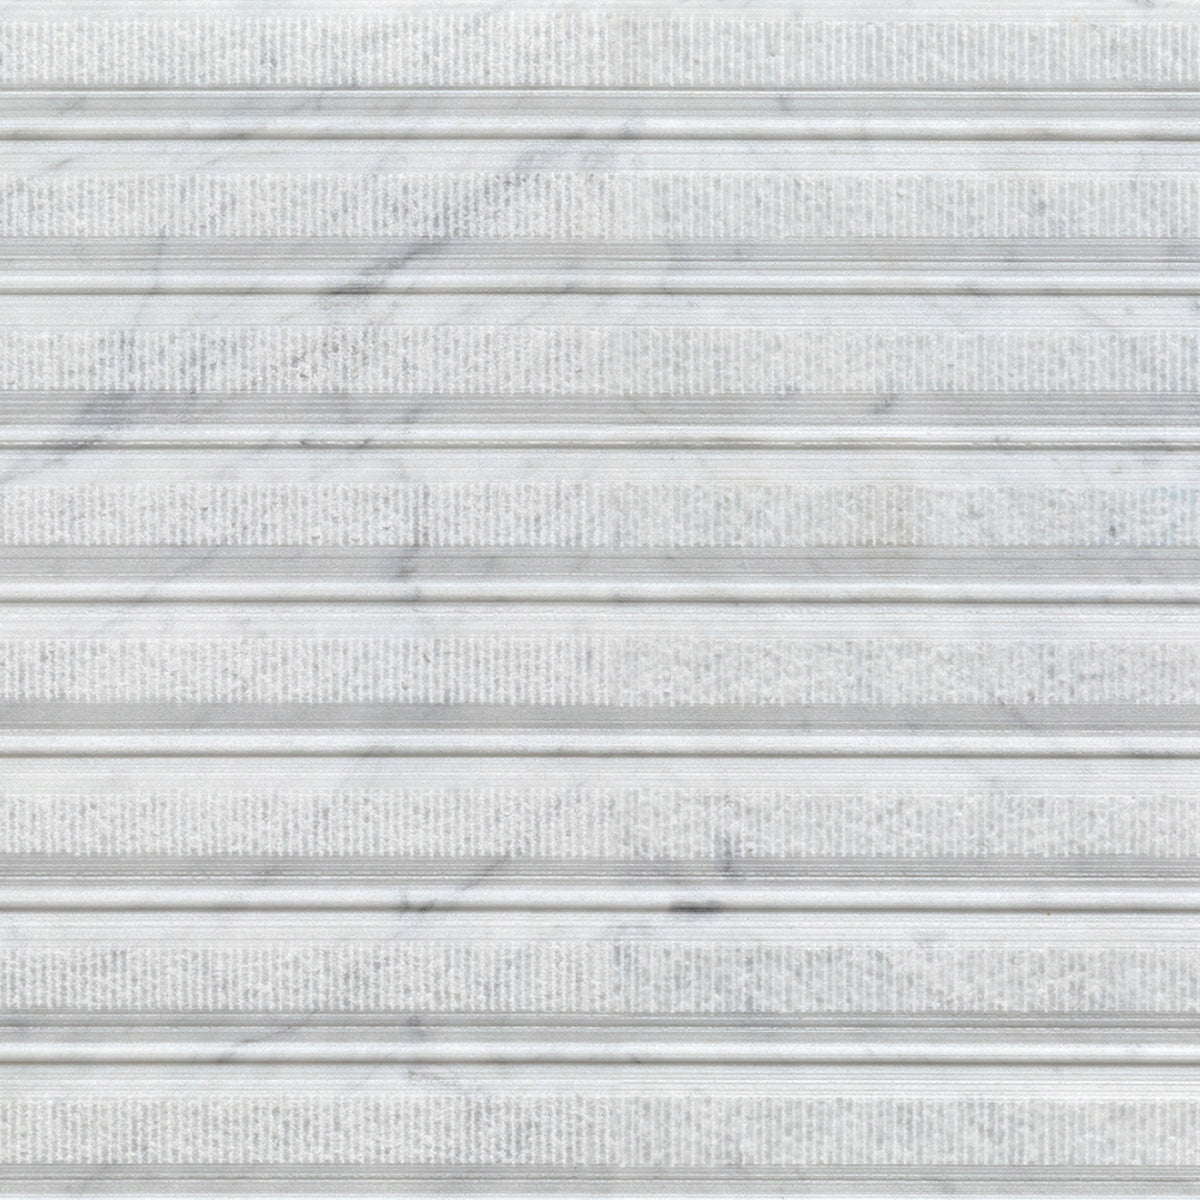 Pannelli Bianco Carrara Marble Swatch Card  Textured Samples product photo